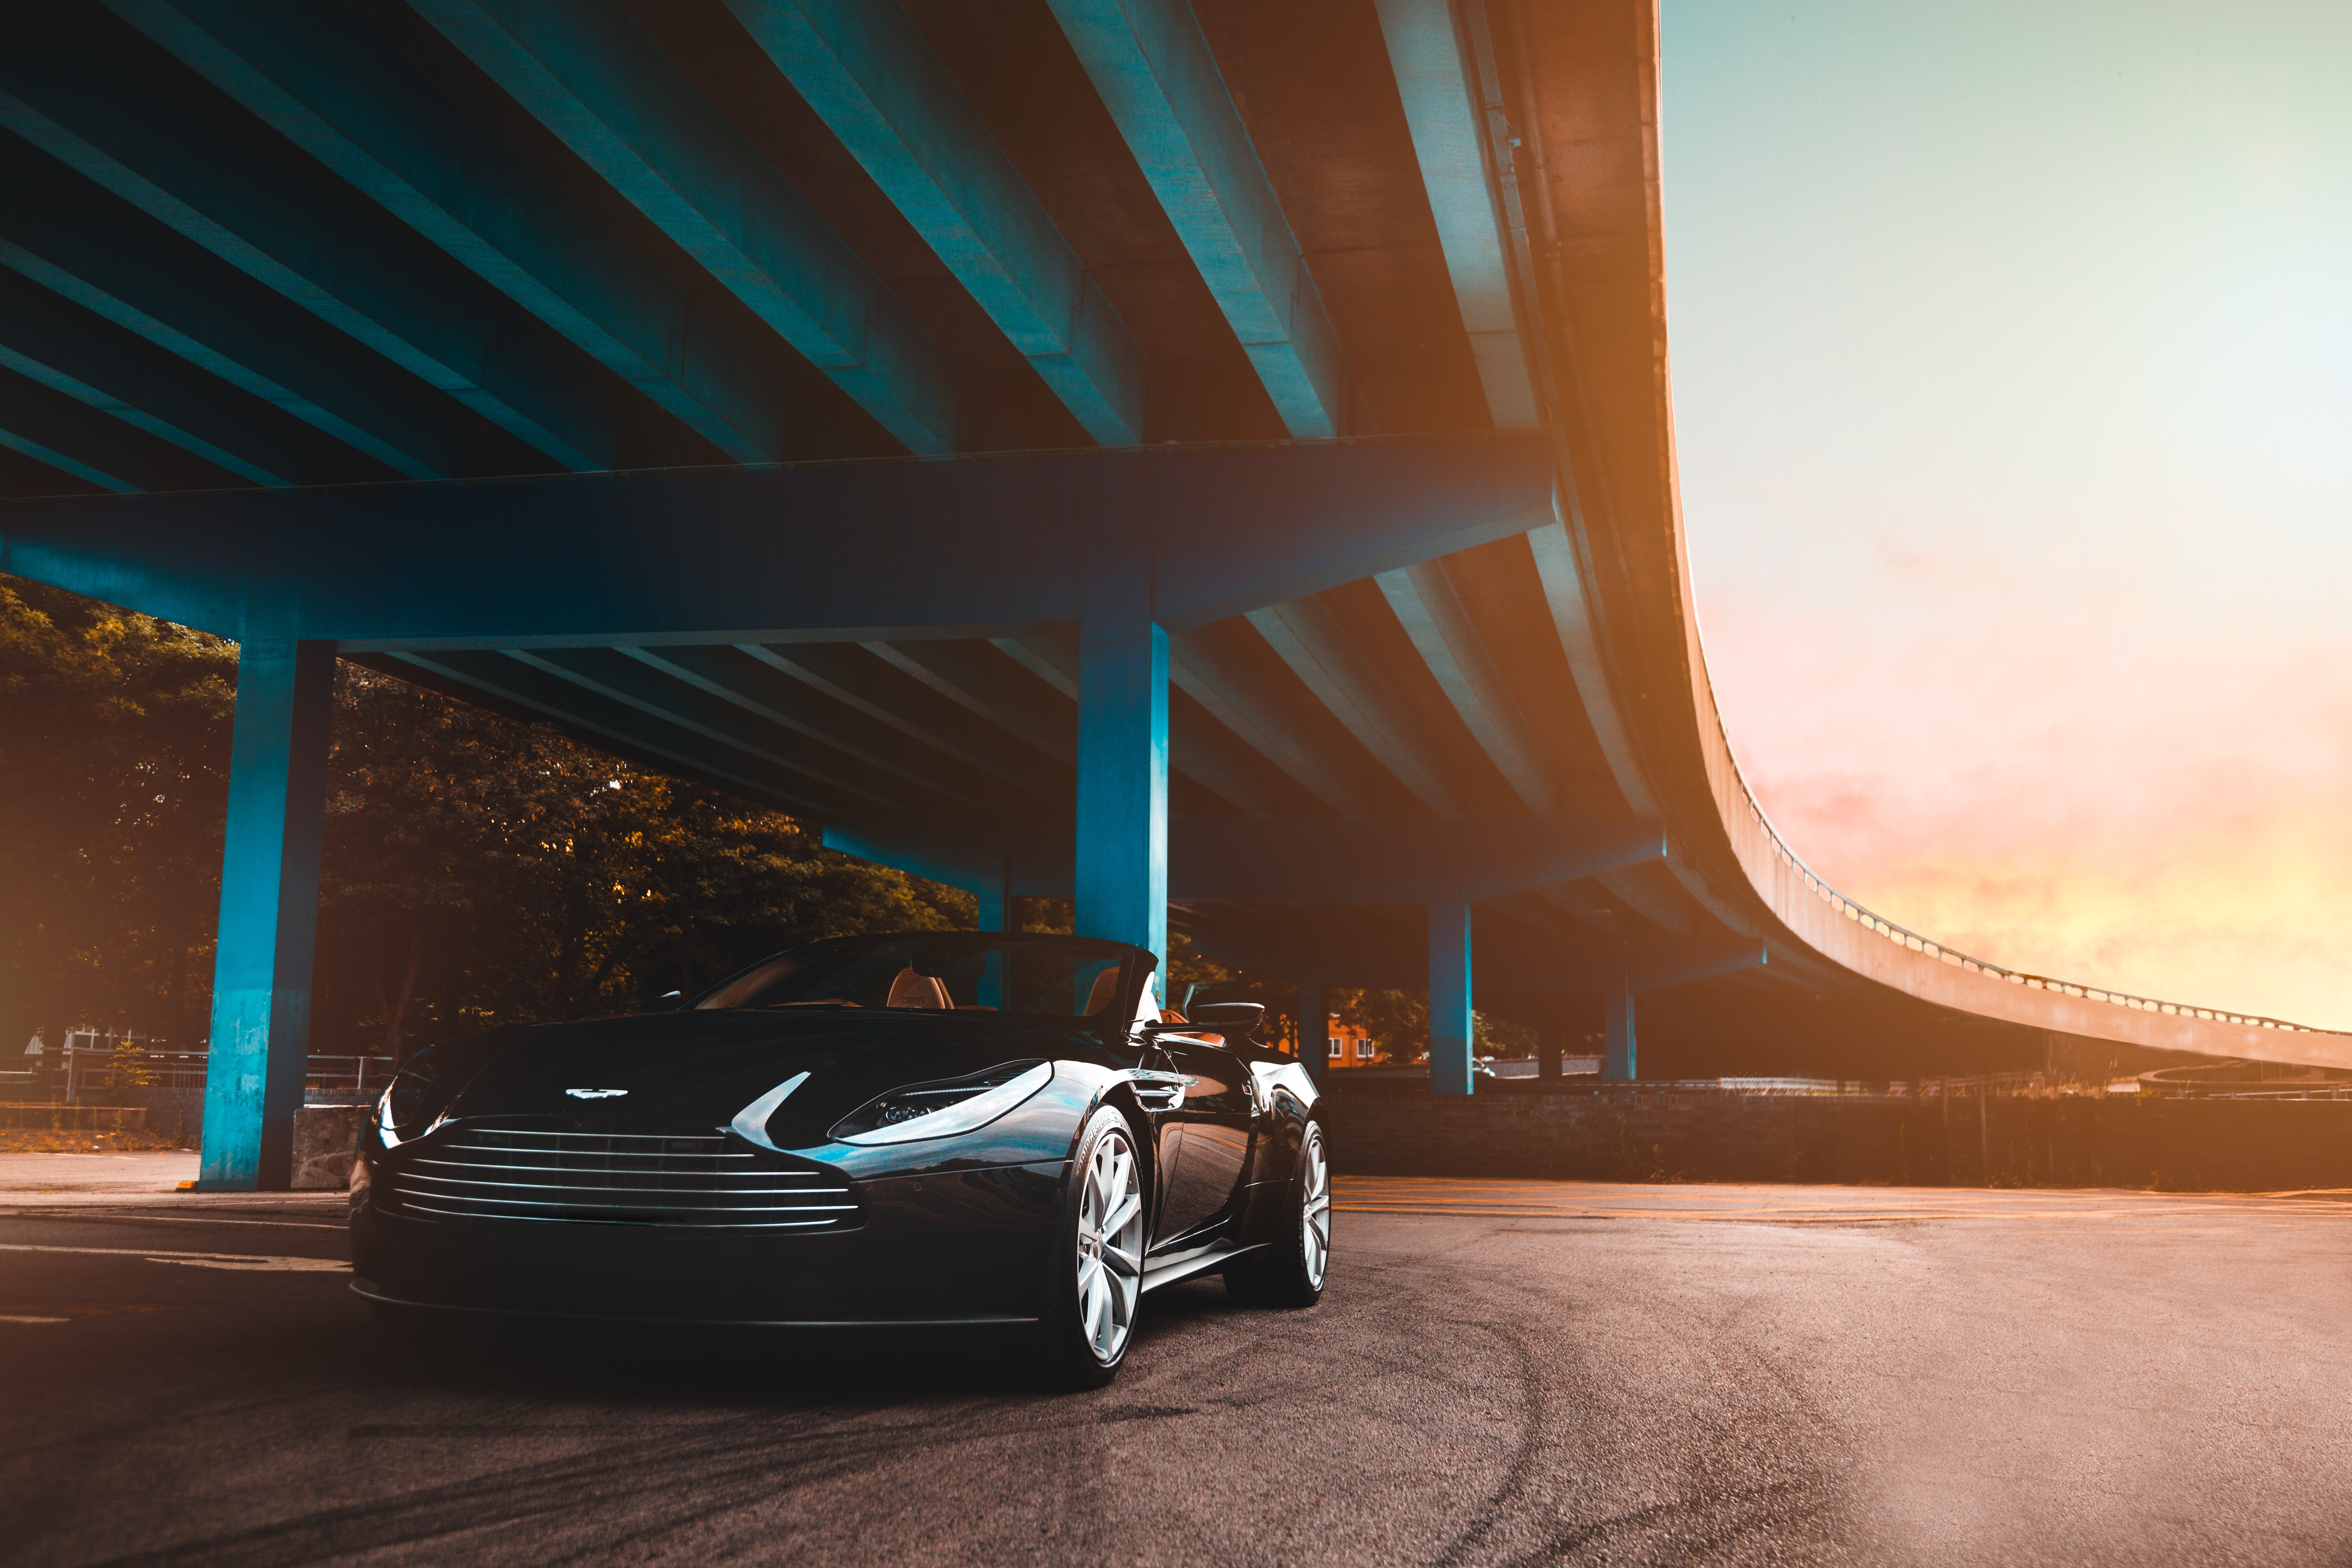 143556 download wallpaper Aston Martin, Cars, Car, Bridge, Luxurious screensavers and pictures for free